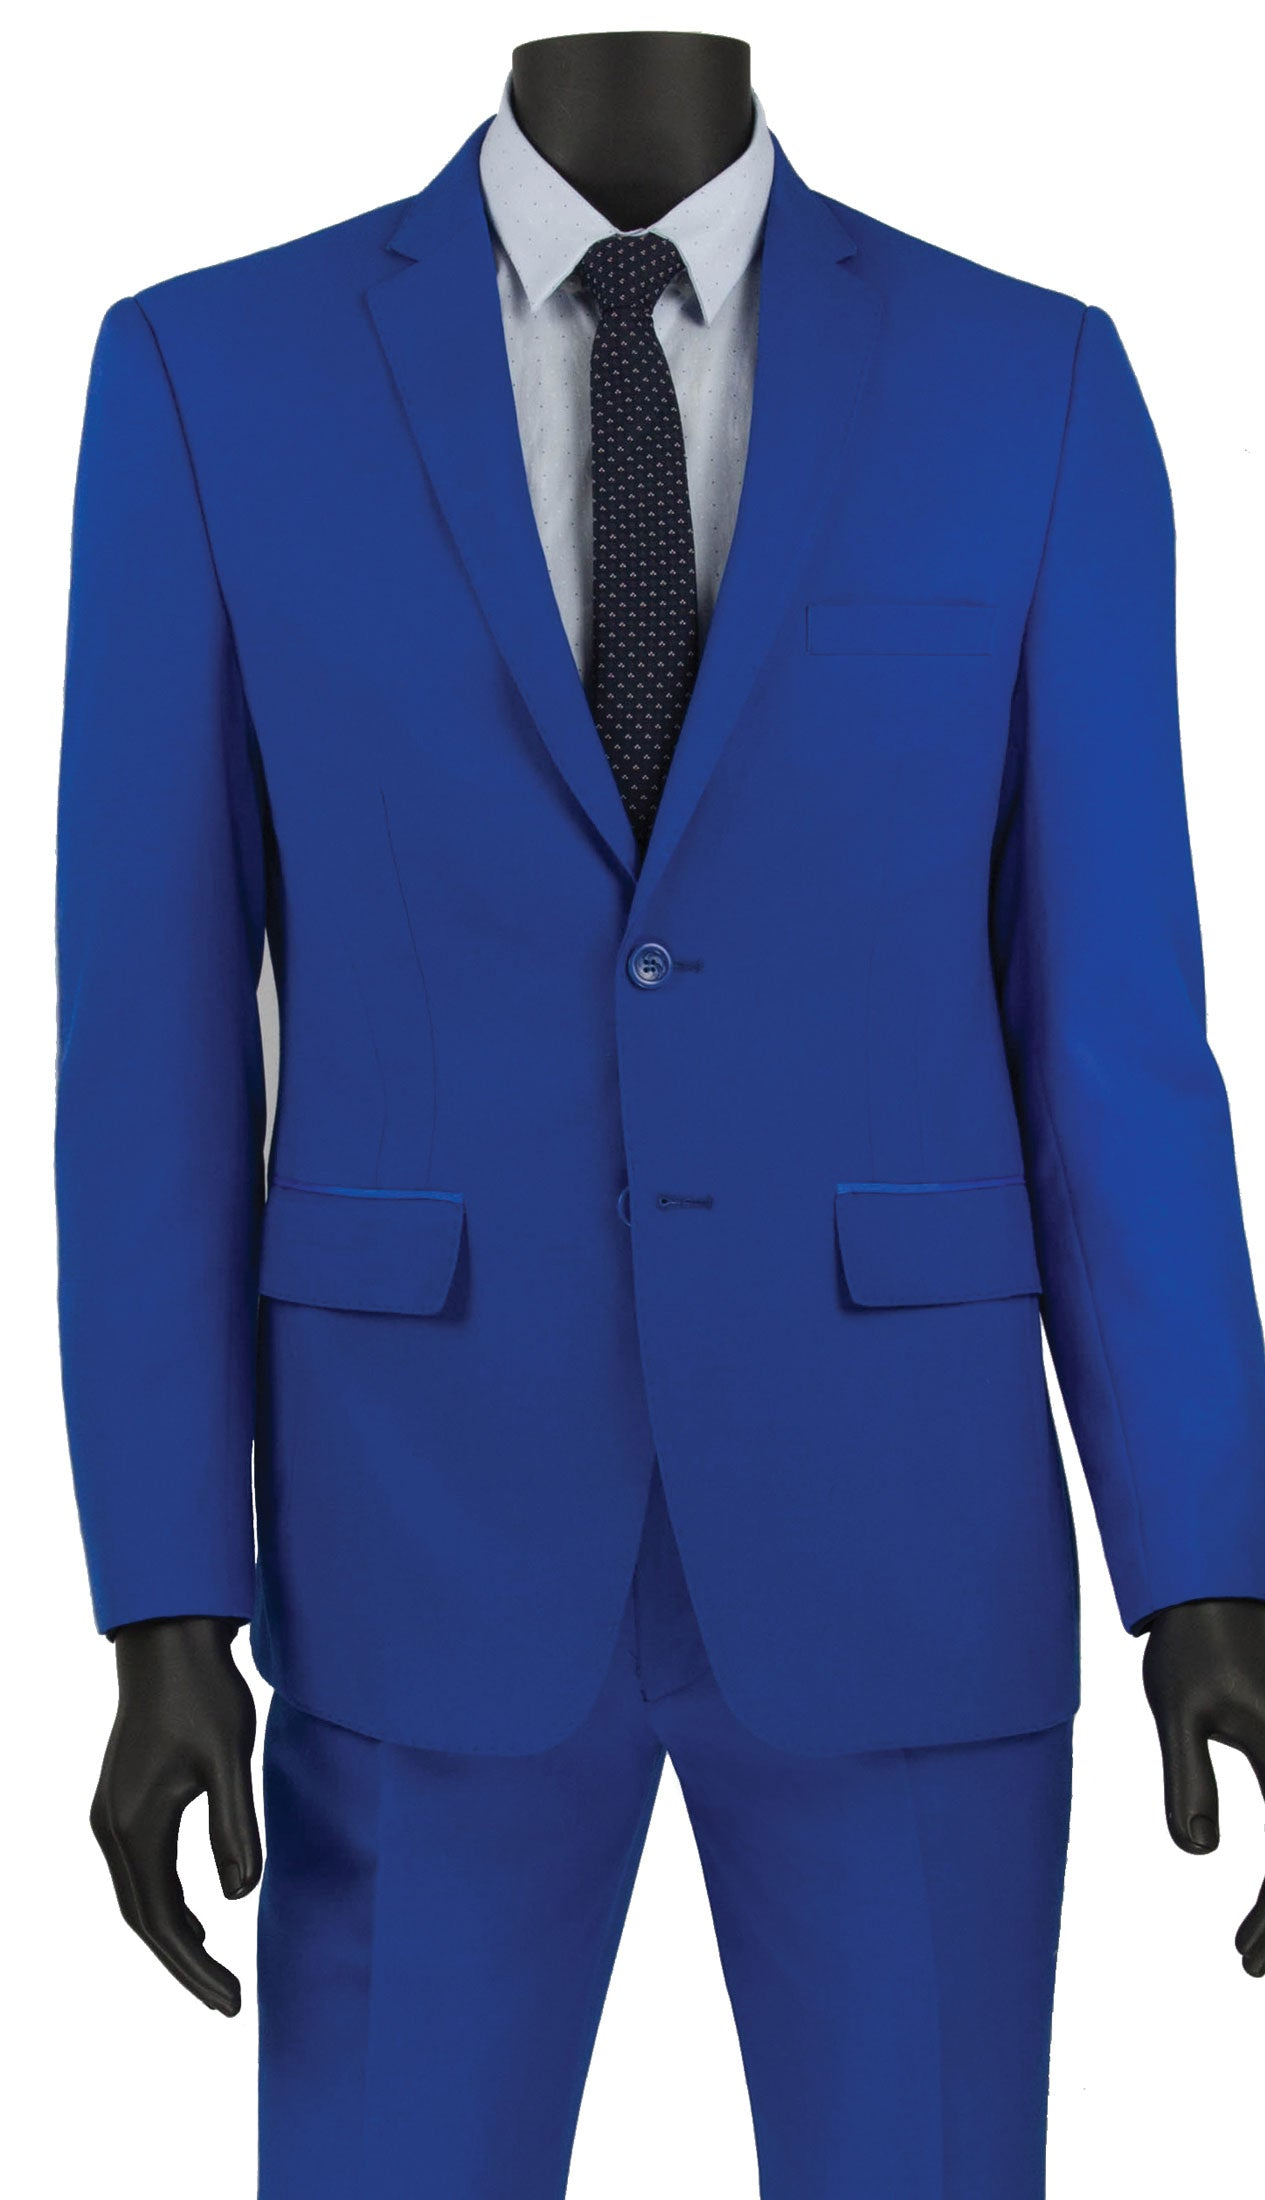 Vinci Men's Suit USRR-1